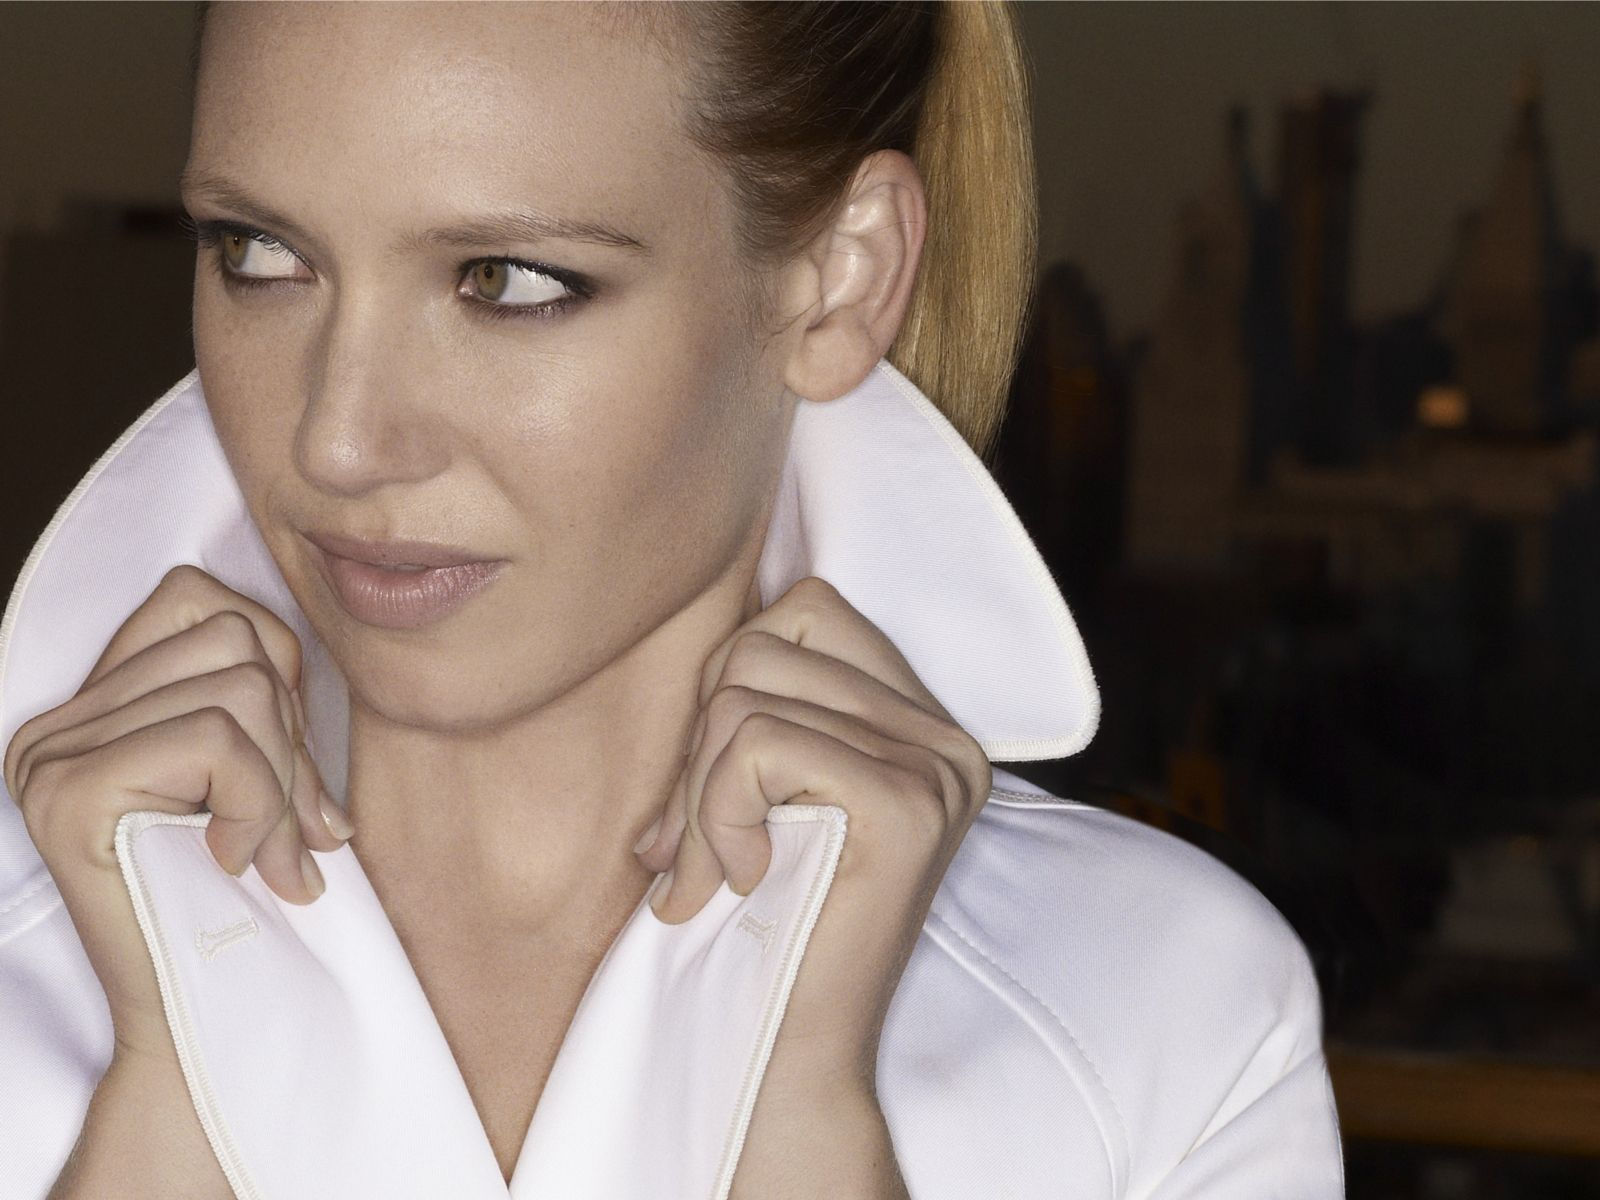 Hacked Anna Torv nudes (84 pics) Hot, YouTube, see through